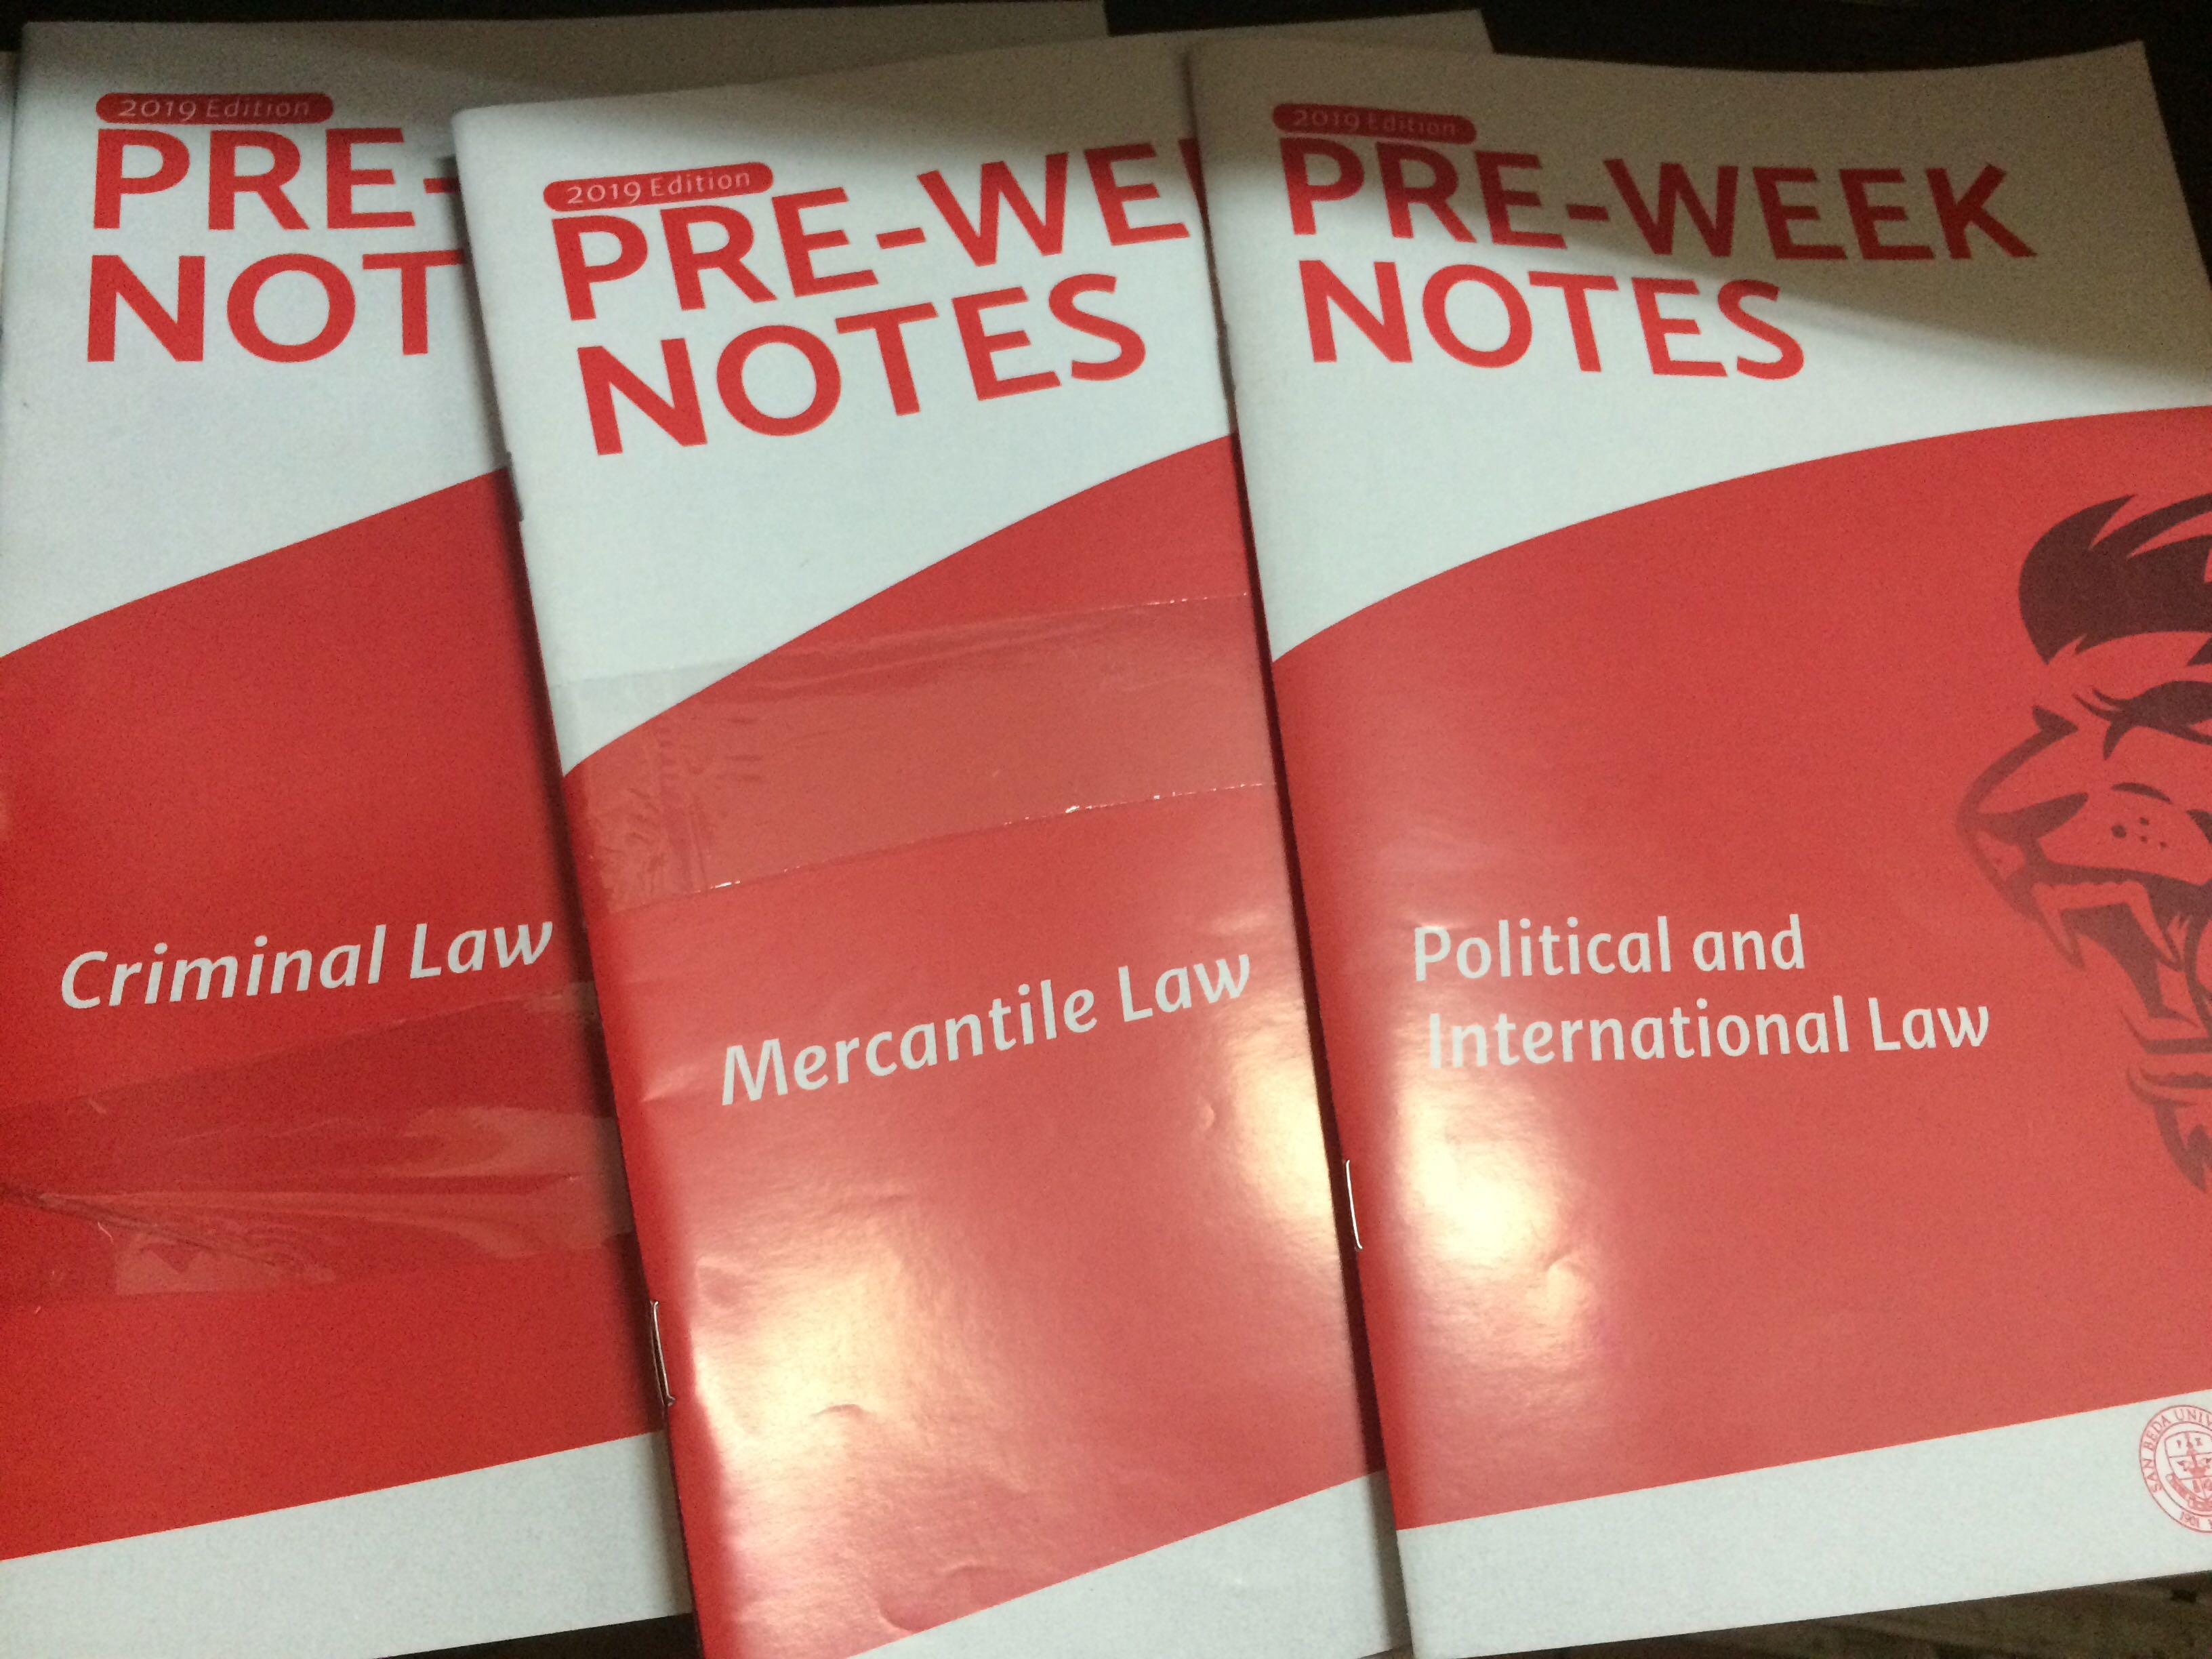 San Beda Preweek Notes: Political Law, Labor Law, Mercantile Law, Criminal Law, Remedial Law, Legal Ethics